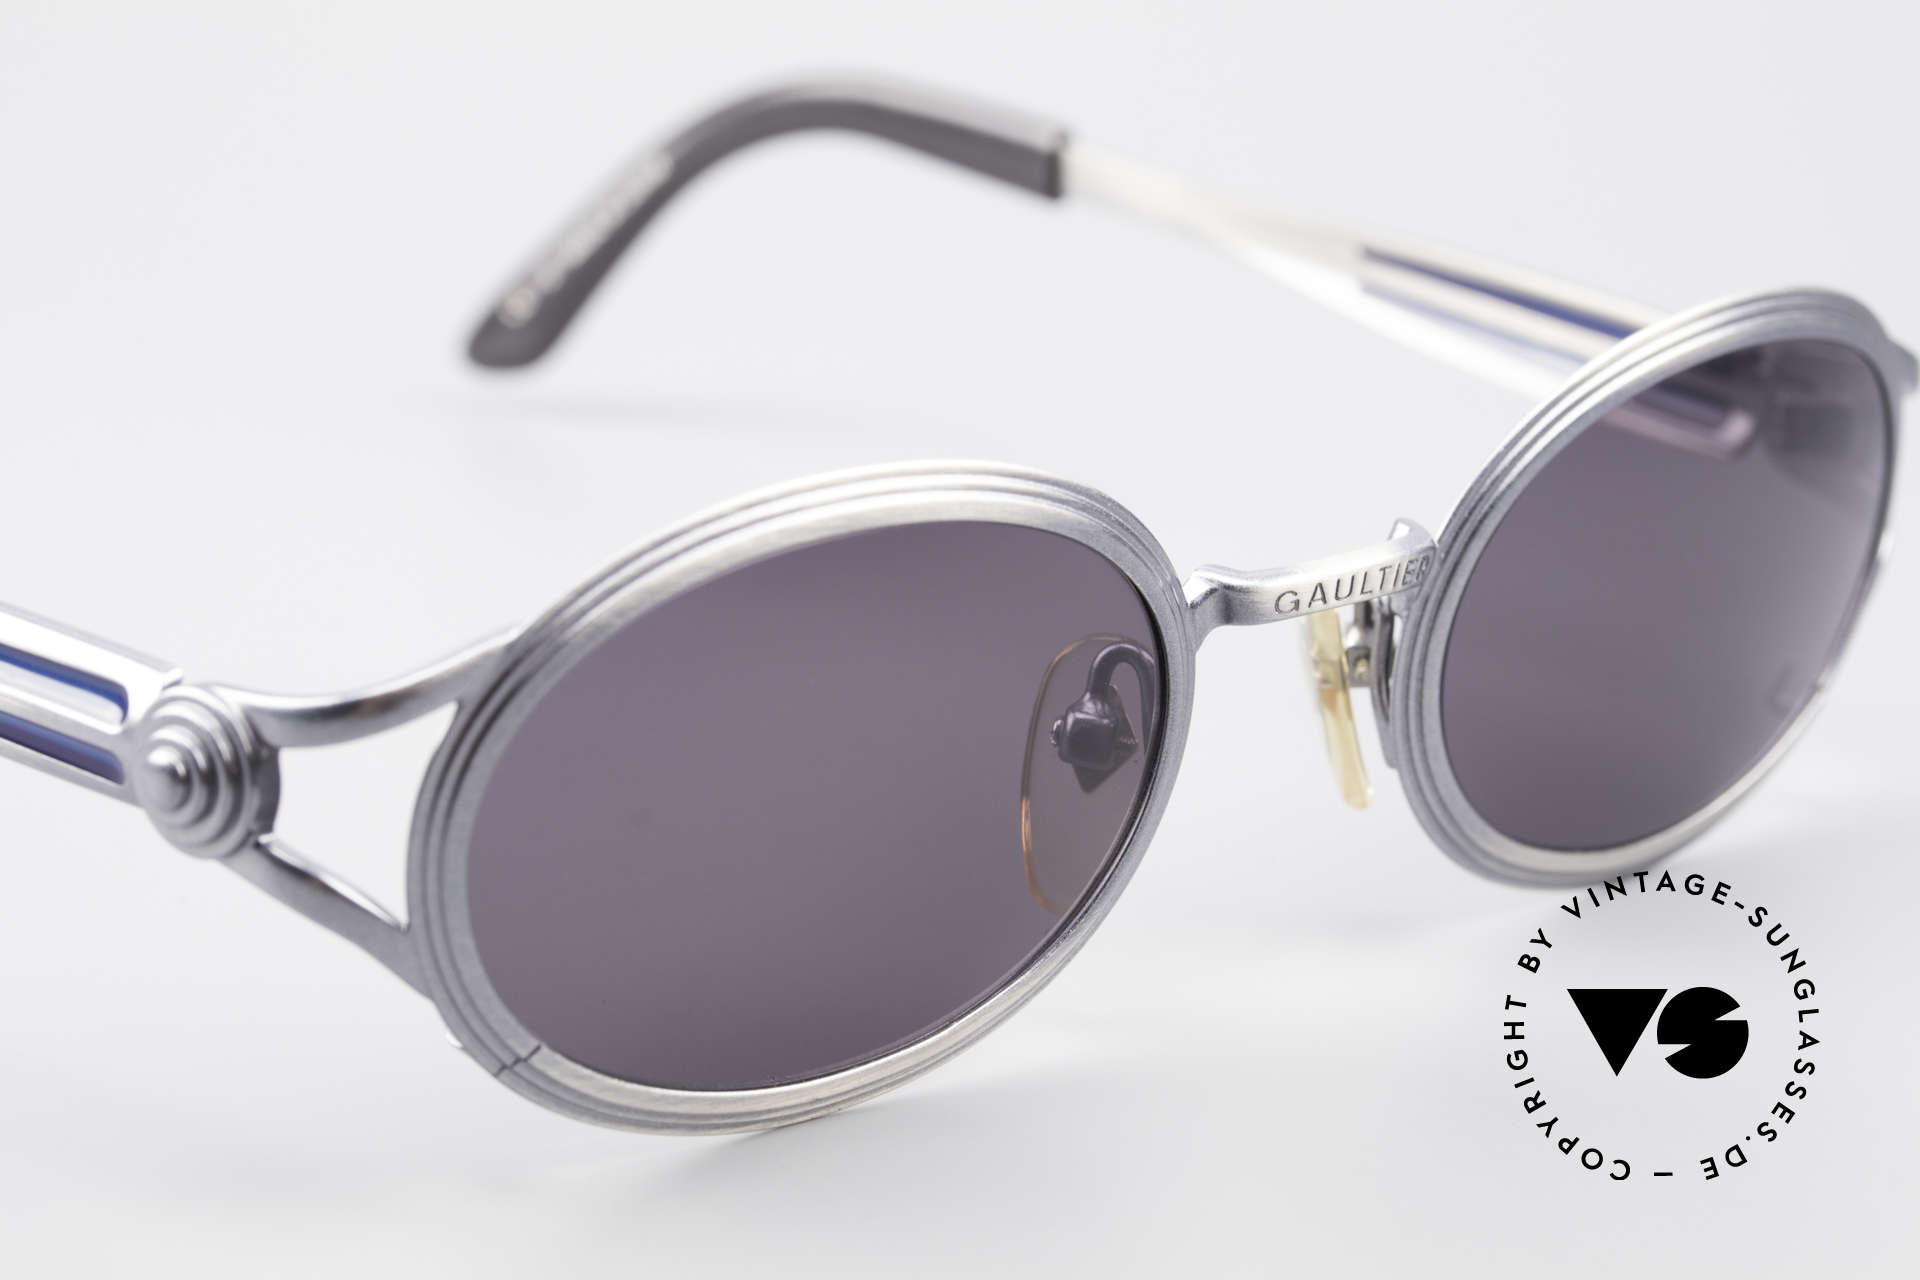 Jean Paul Gaultier 56-7114 Oval Steampunk JPG Glasses, orig. sun lenses (100% UV) can be replaced optionally, Made for Men and Women